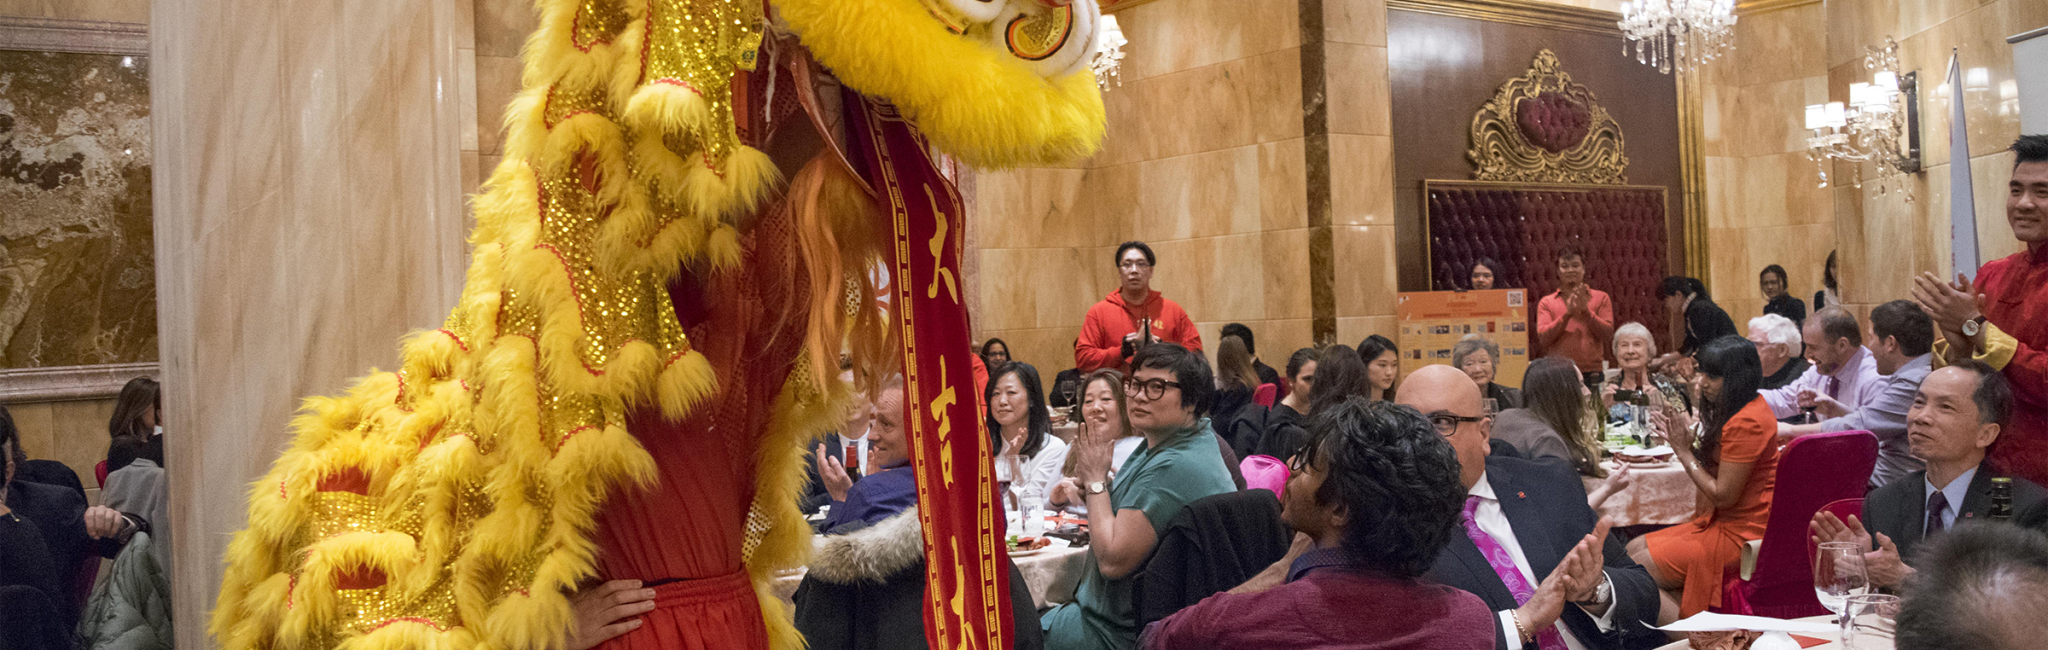 Check out the photos from our 2018 Lunar New Year Fundraiser!